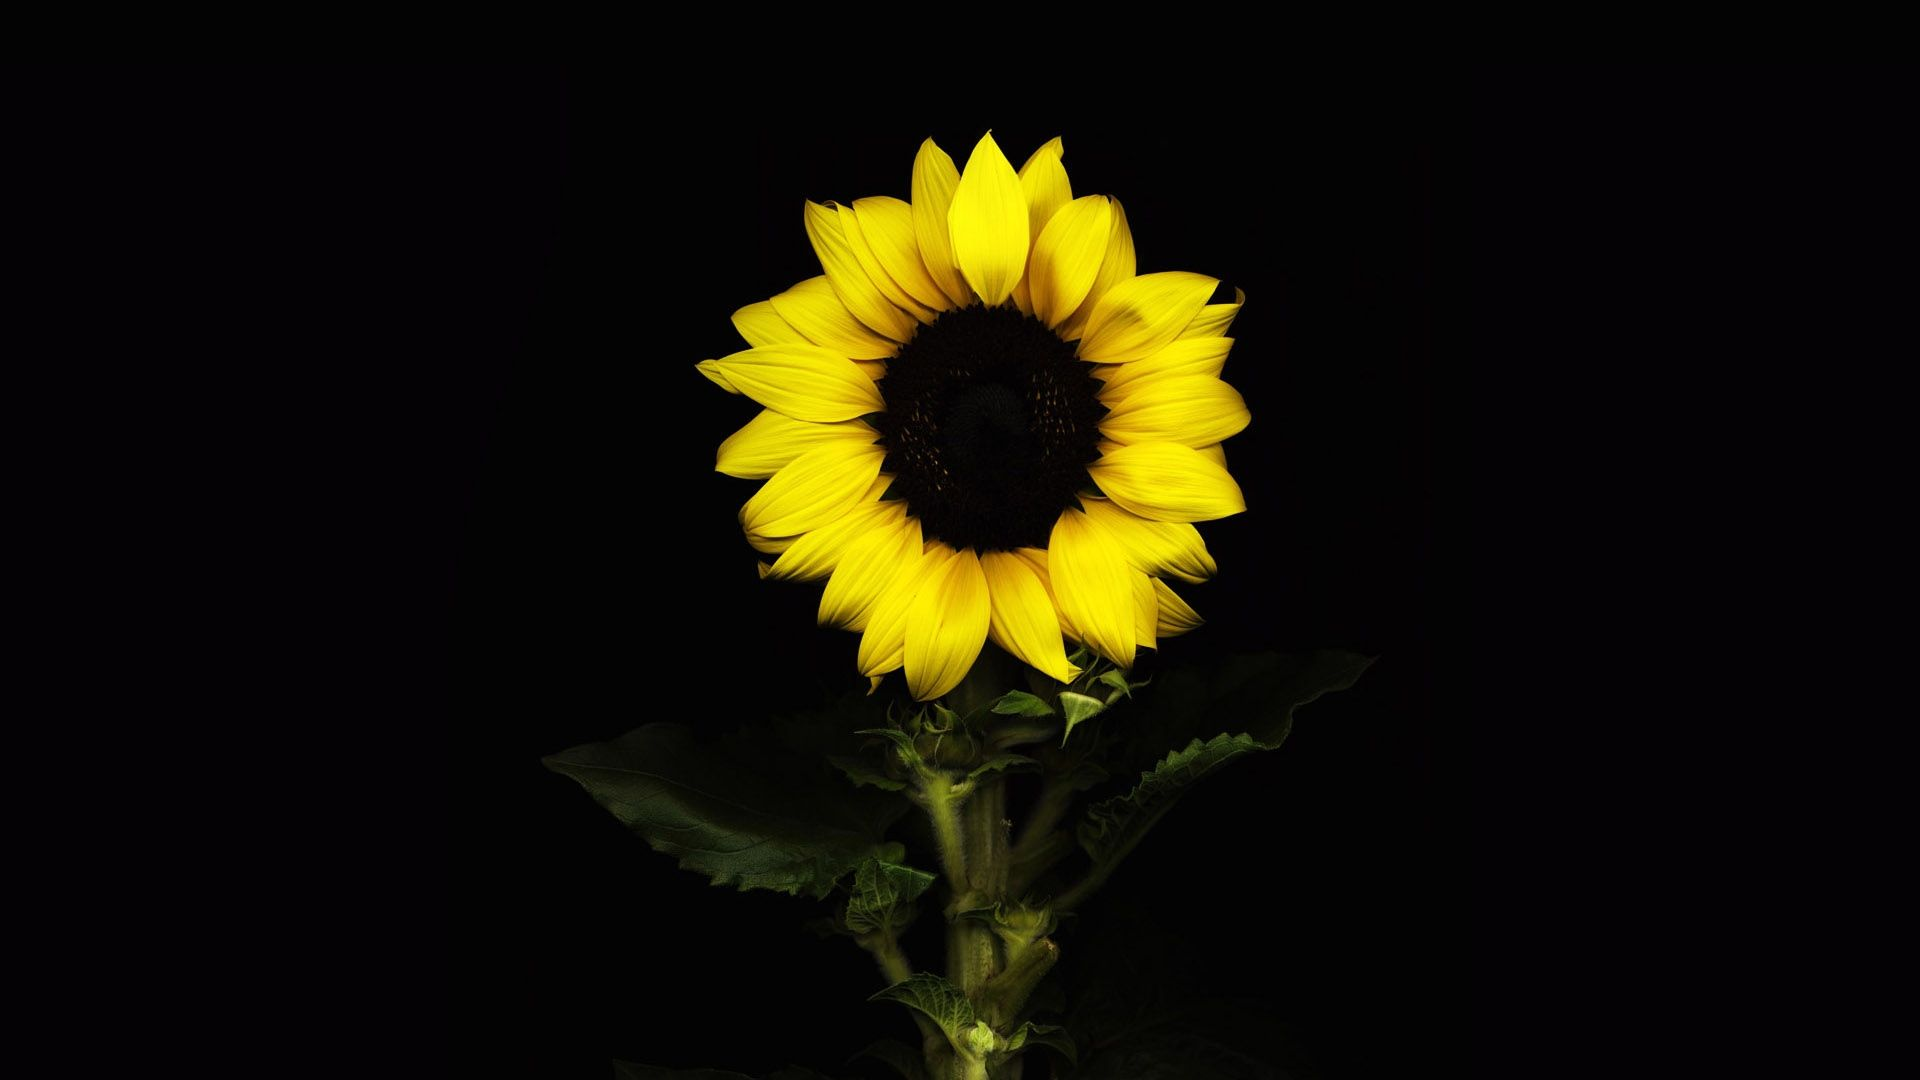 Amazing Wallpaper Macbook Sunflower - 94ce011d37295ae99b309585a8af1785  Perfect Image Reference_41774.jpg